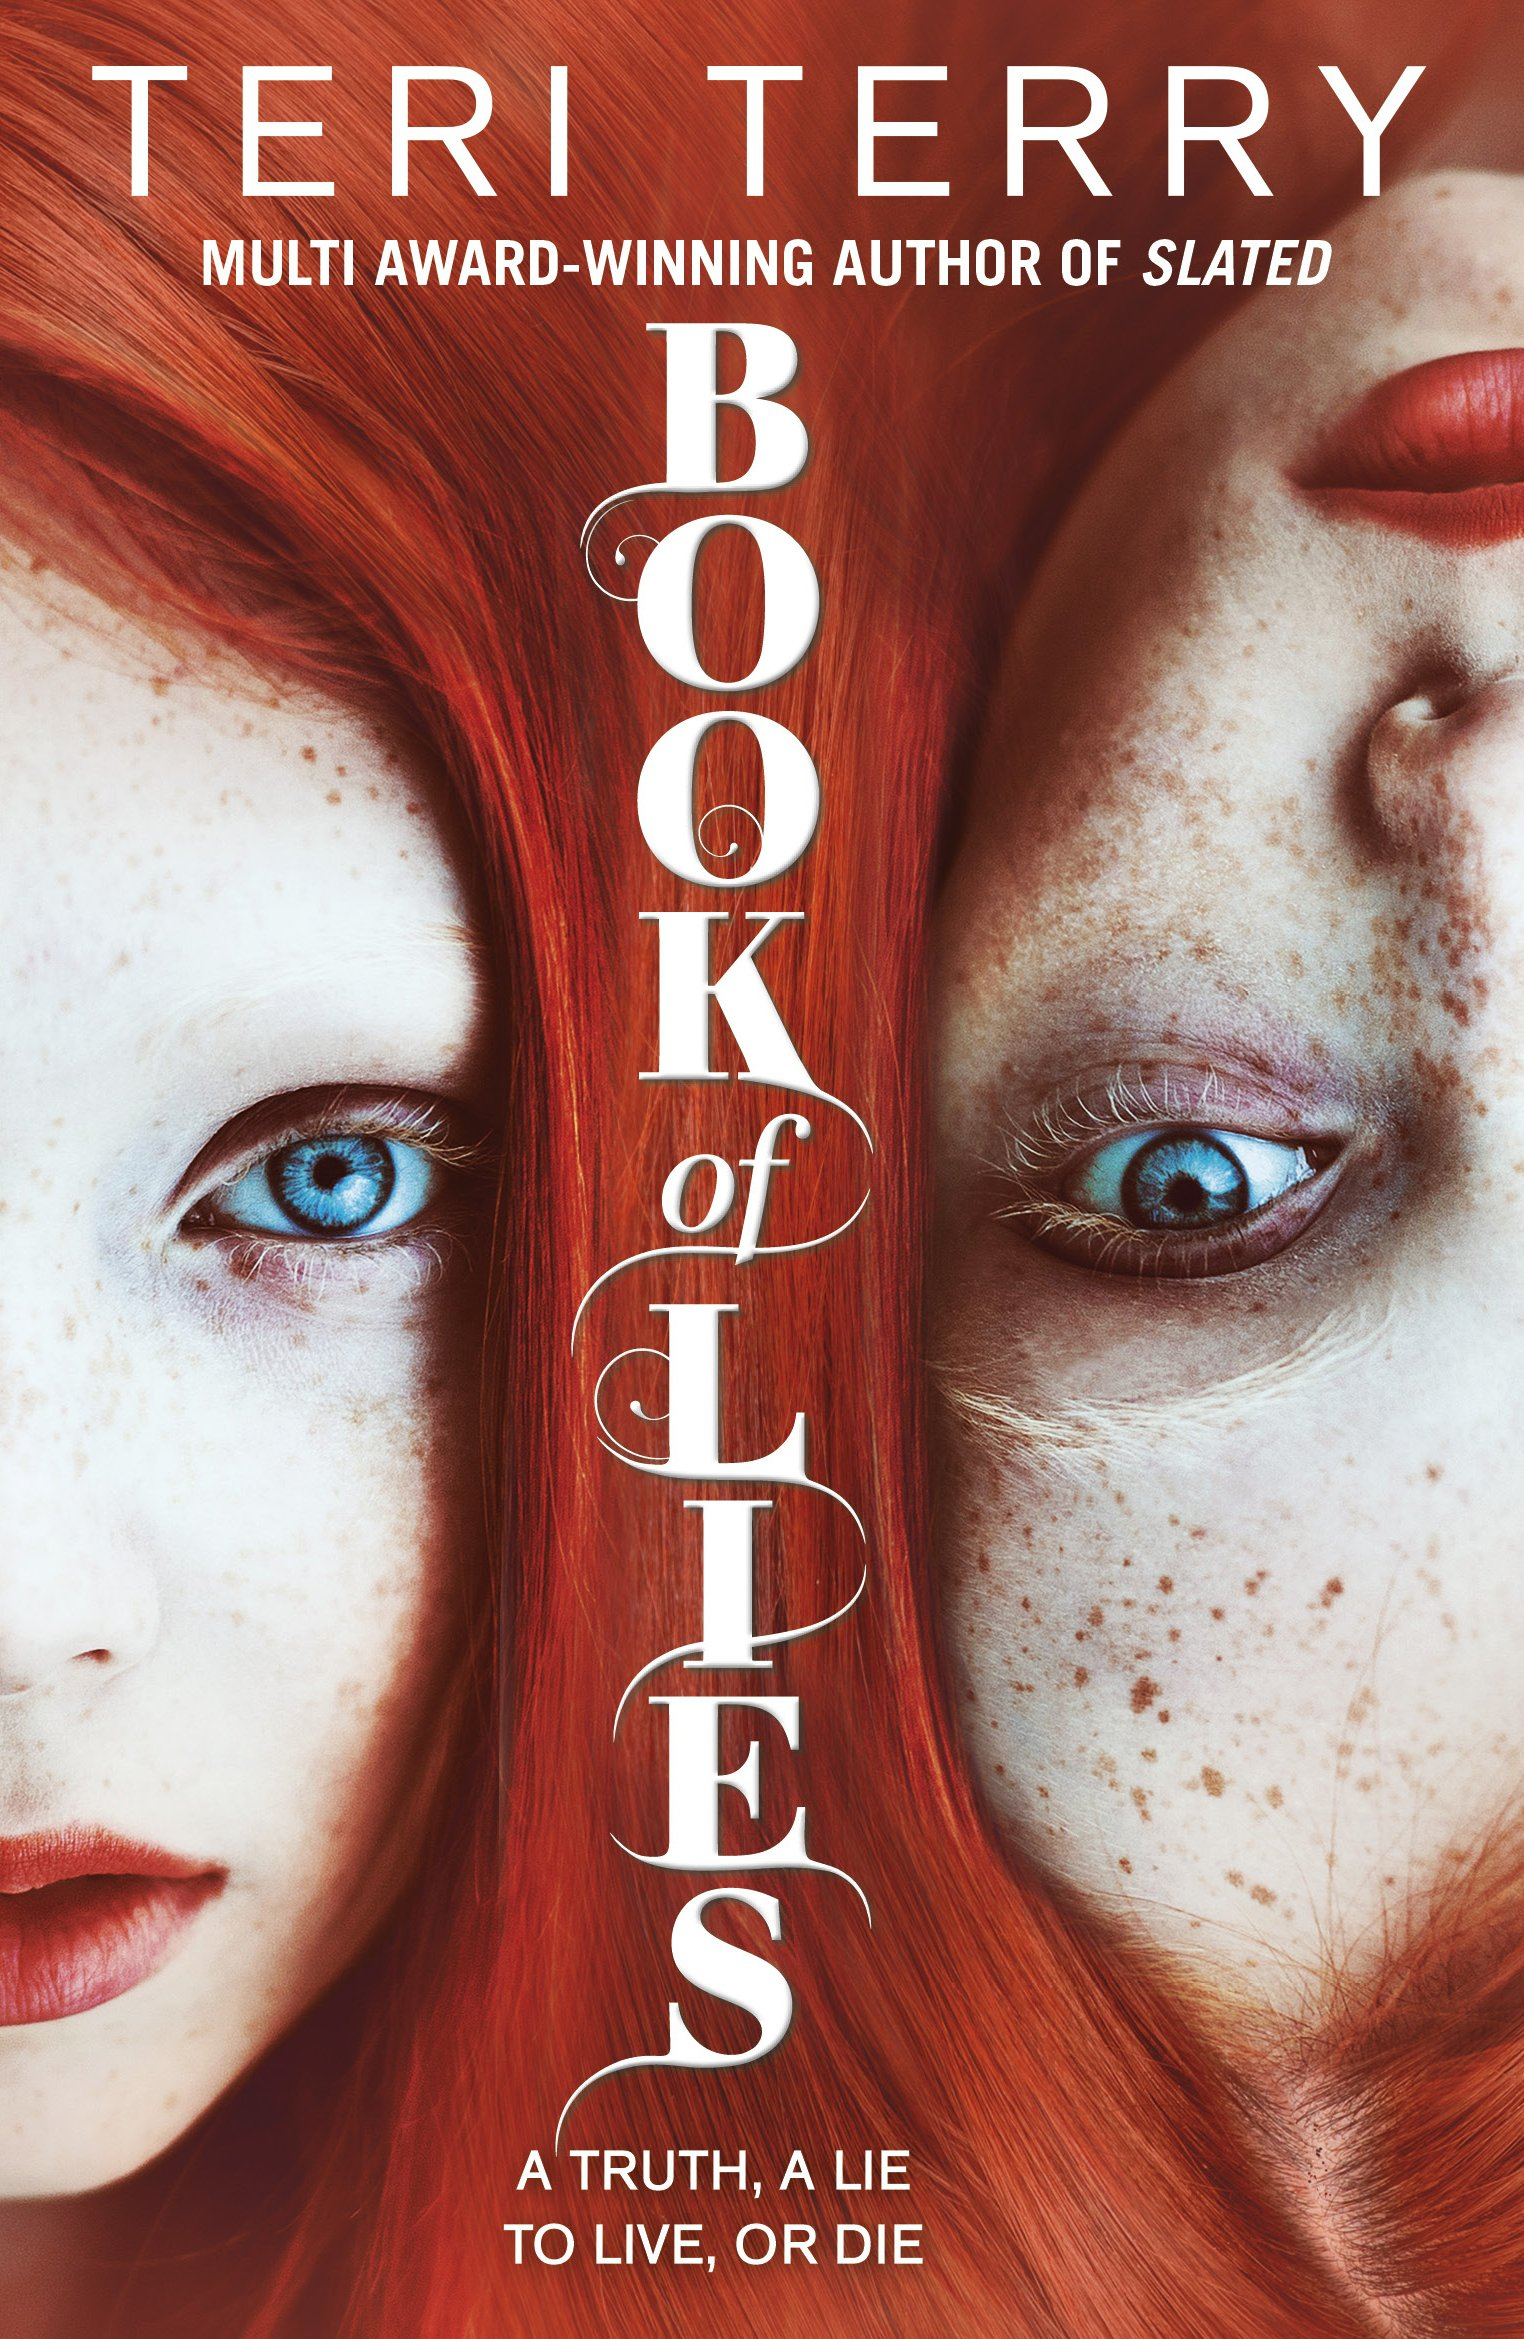 BOOK OF LIES BY TERI TERRY BOOK REVIEW